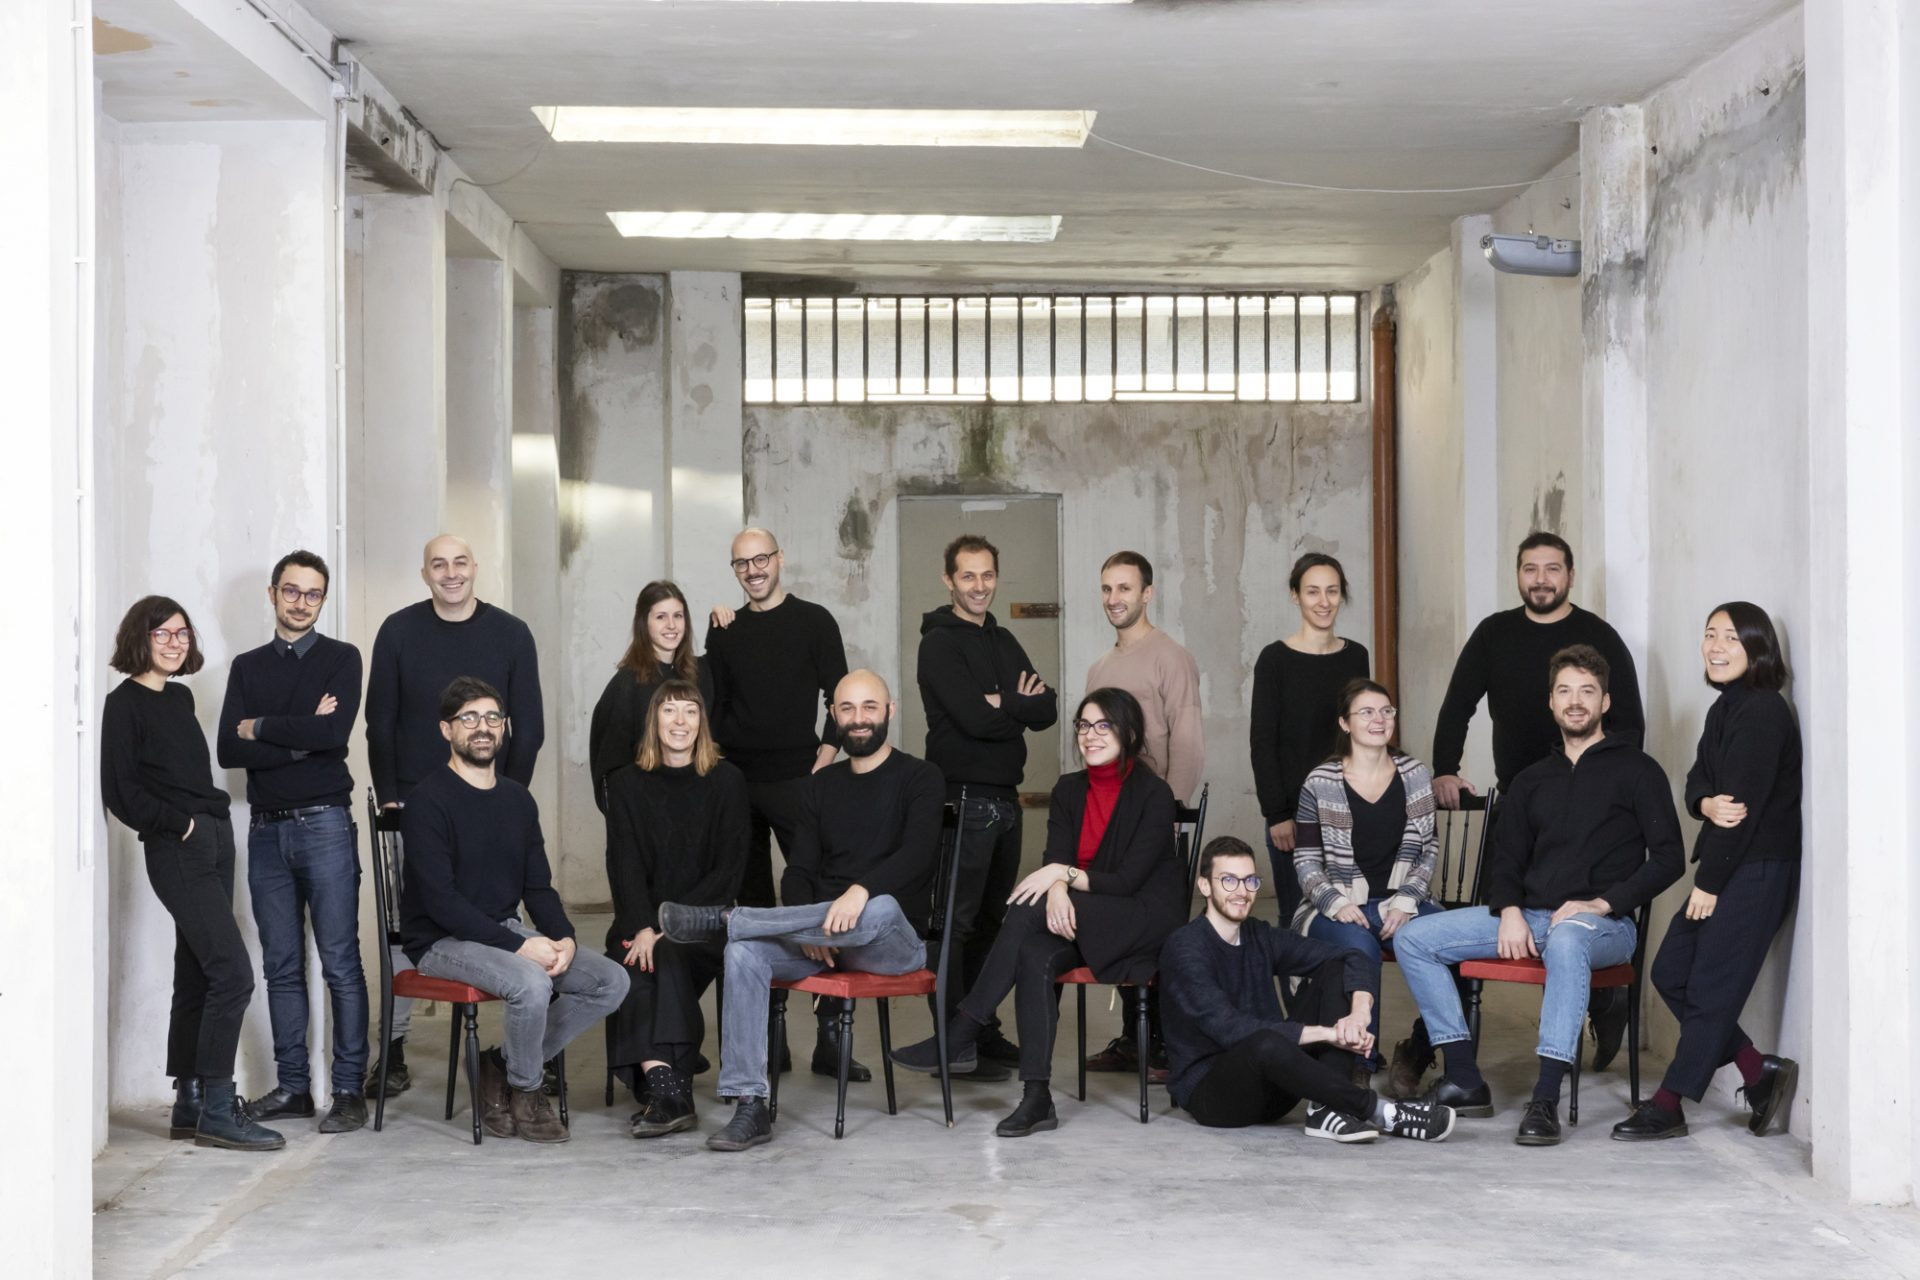 Whole team lamatilde, the architecture firm in Turin.